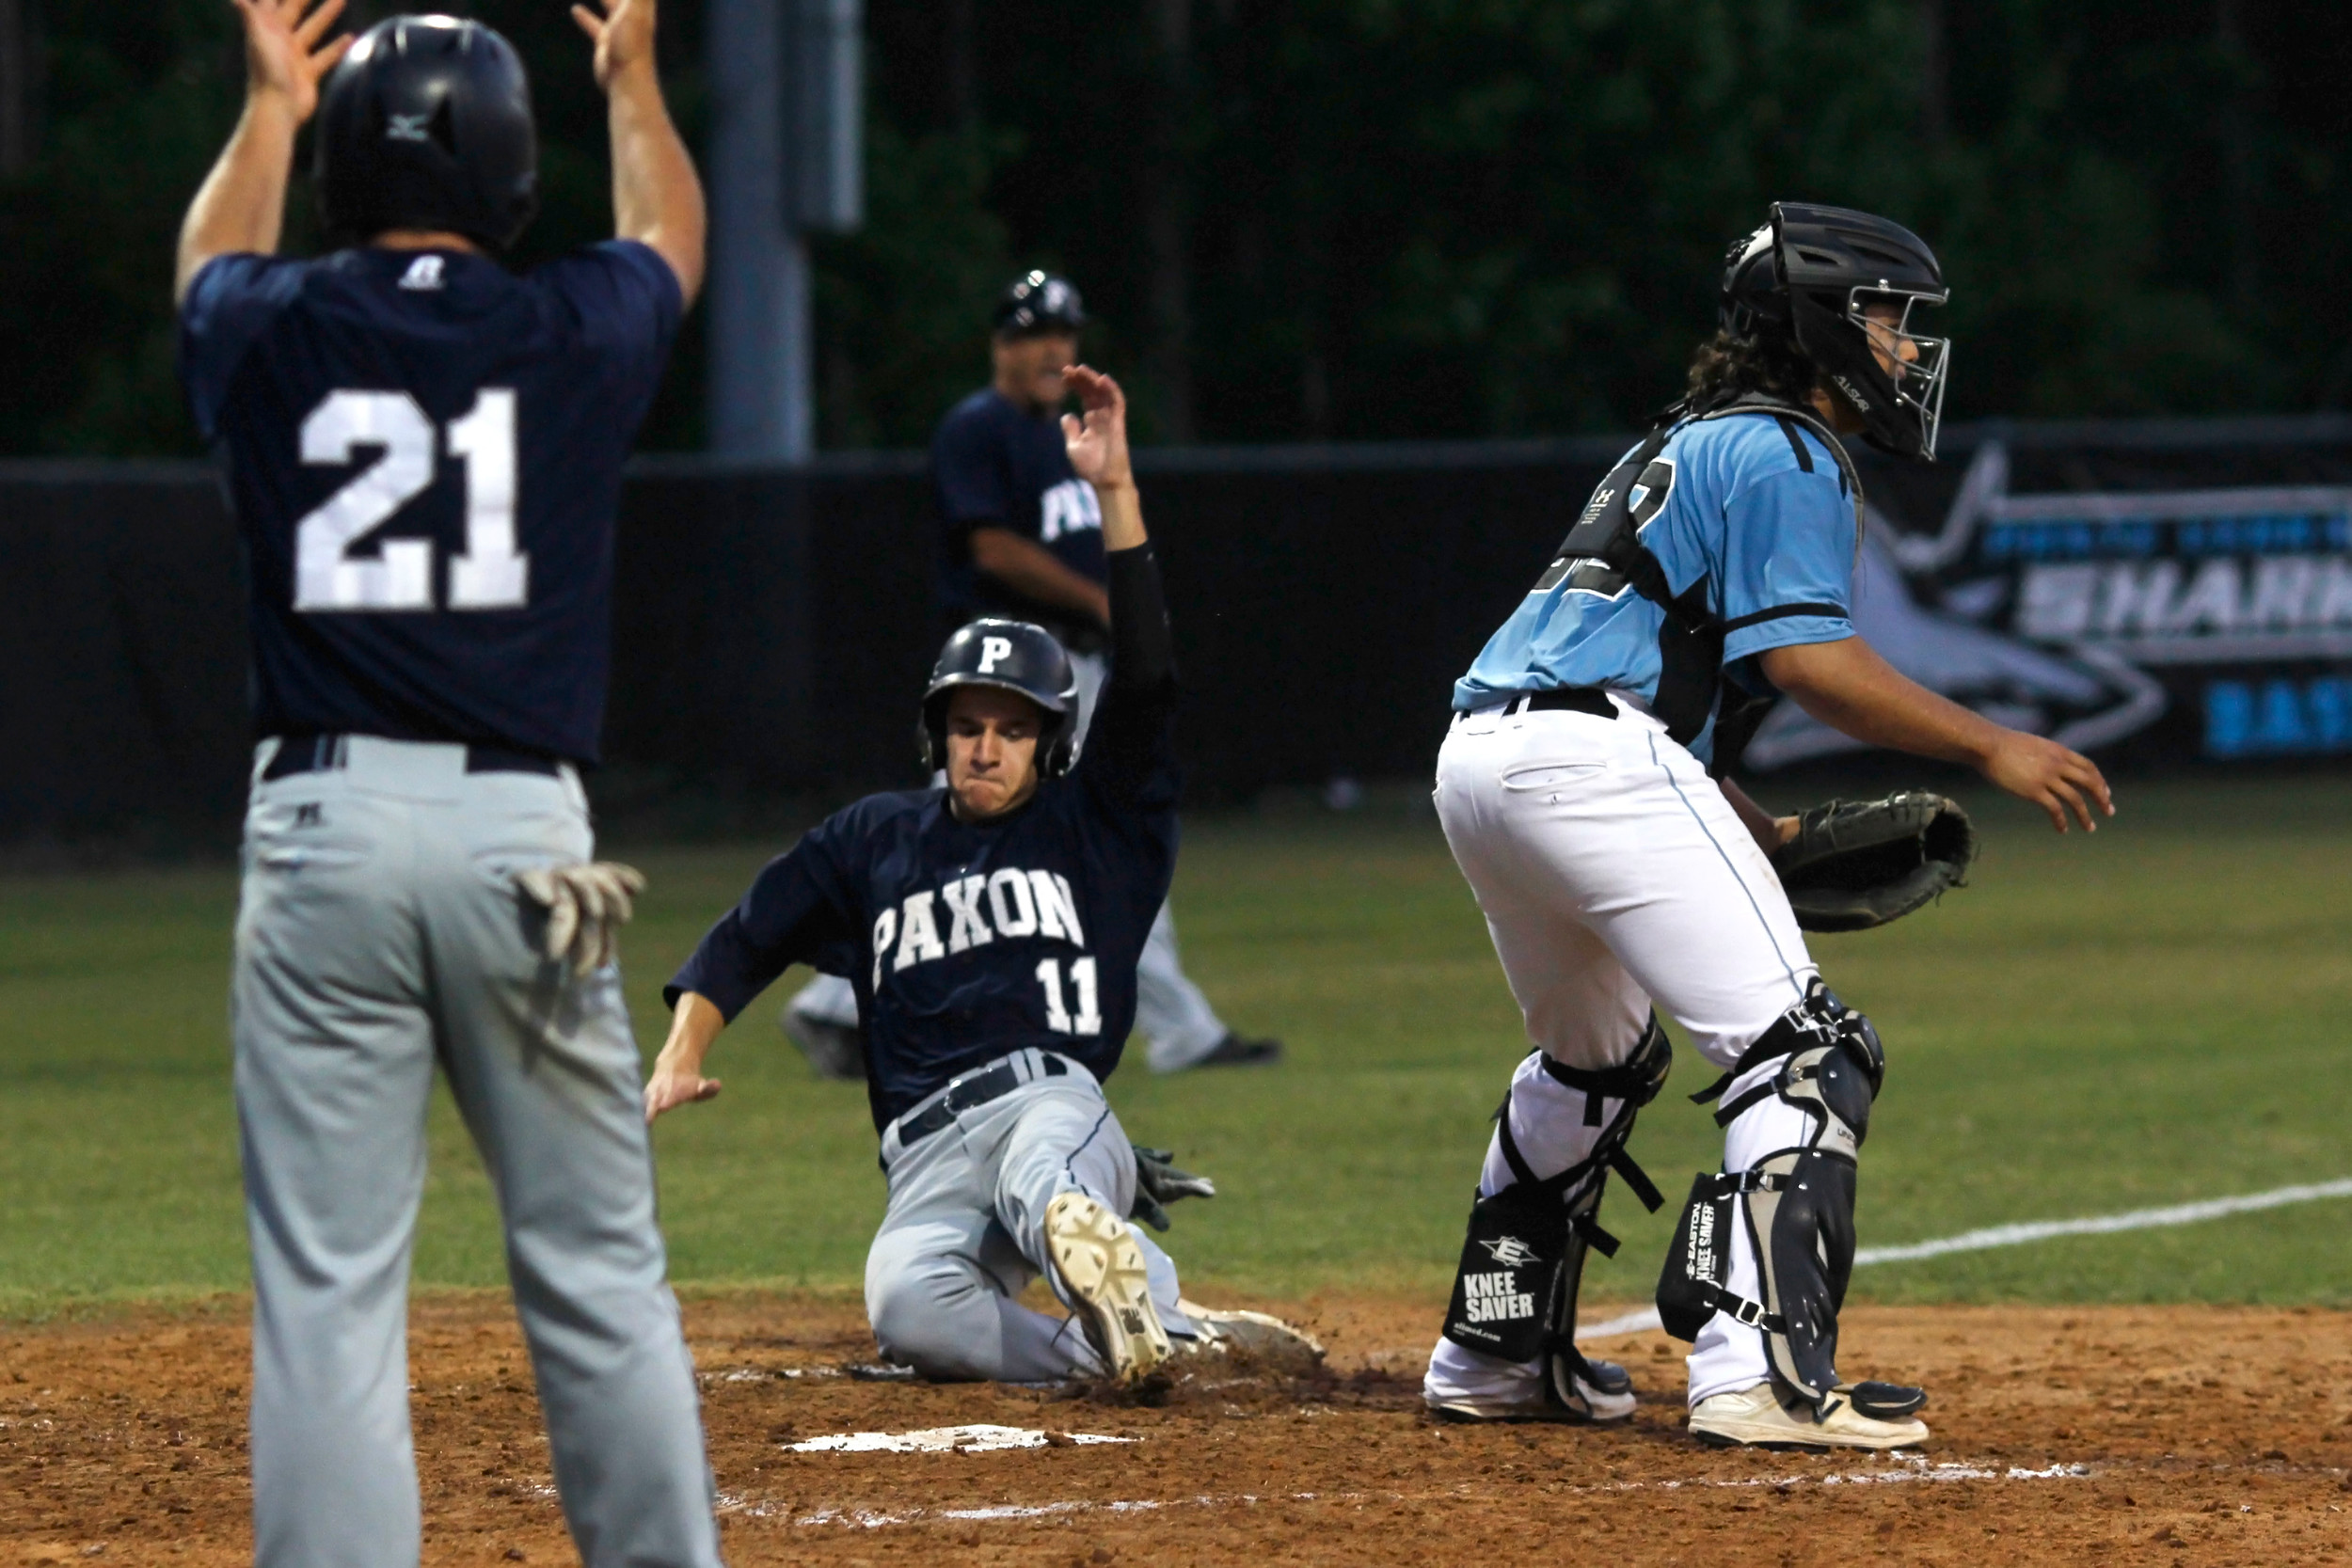 Shark catcher Frank Ferrante waits for the throw as the second Paxon run scores.